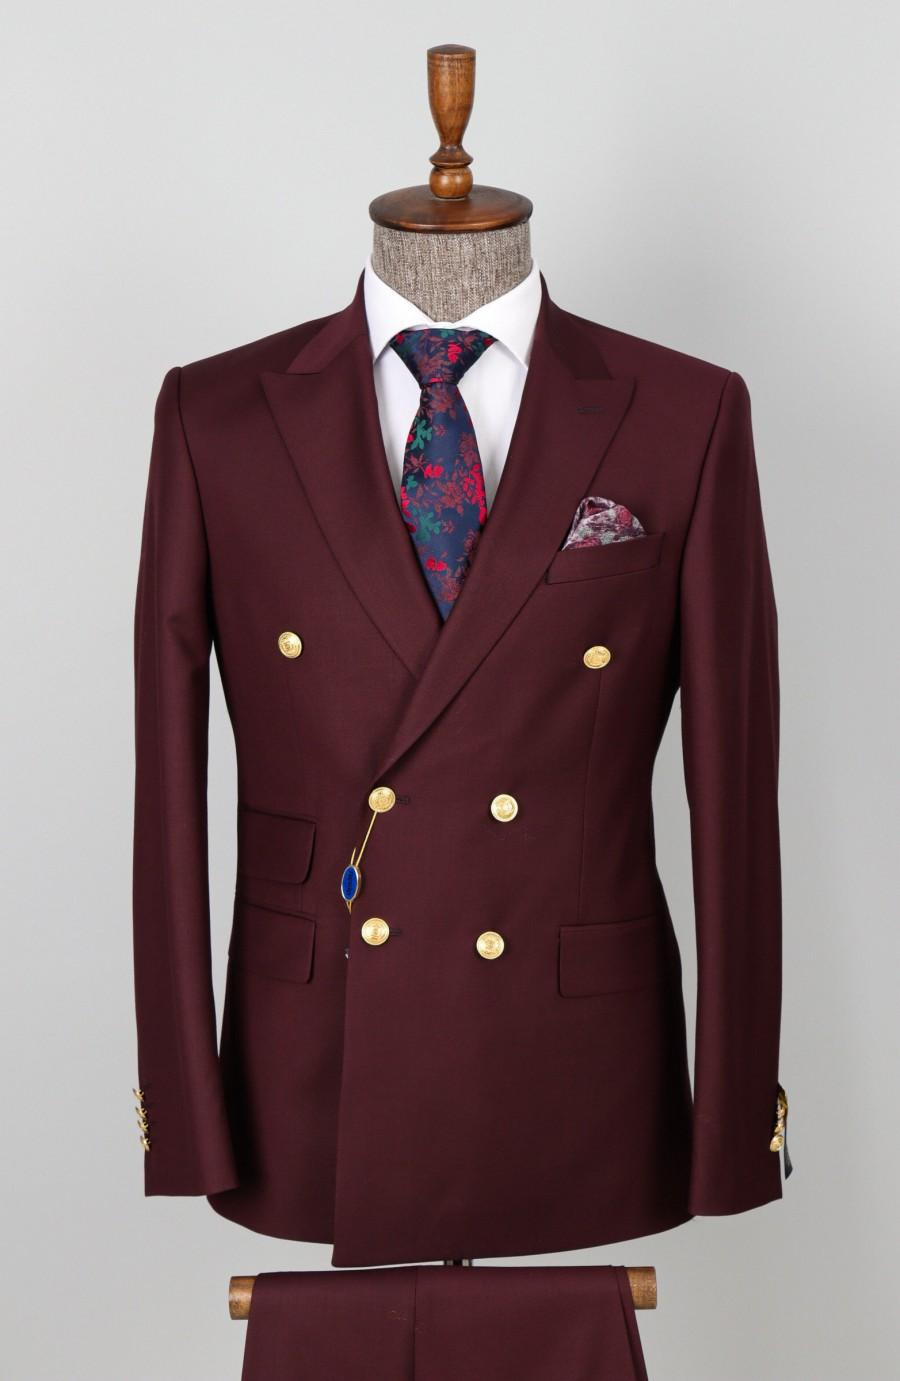 زفاف - Double Breasted Maroon - 6 Button Button Men Suit